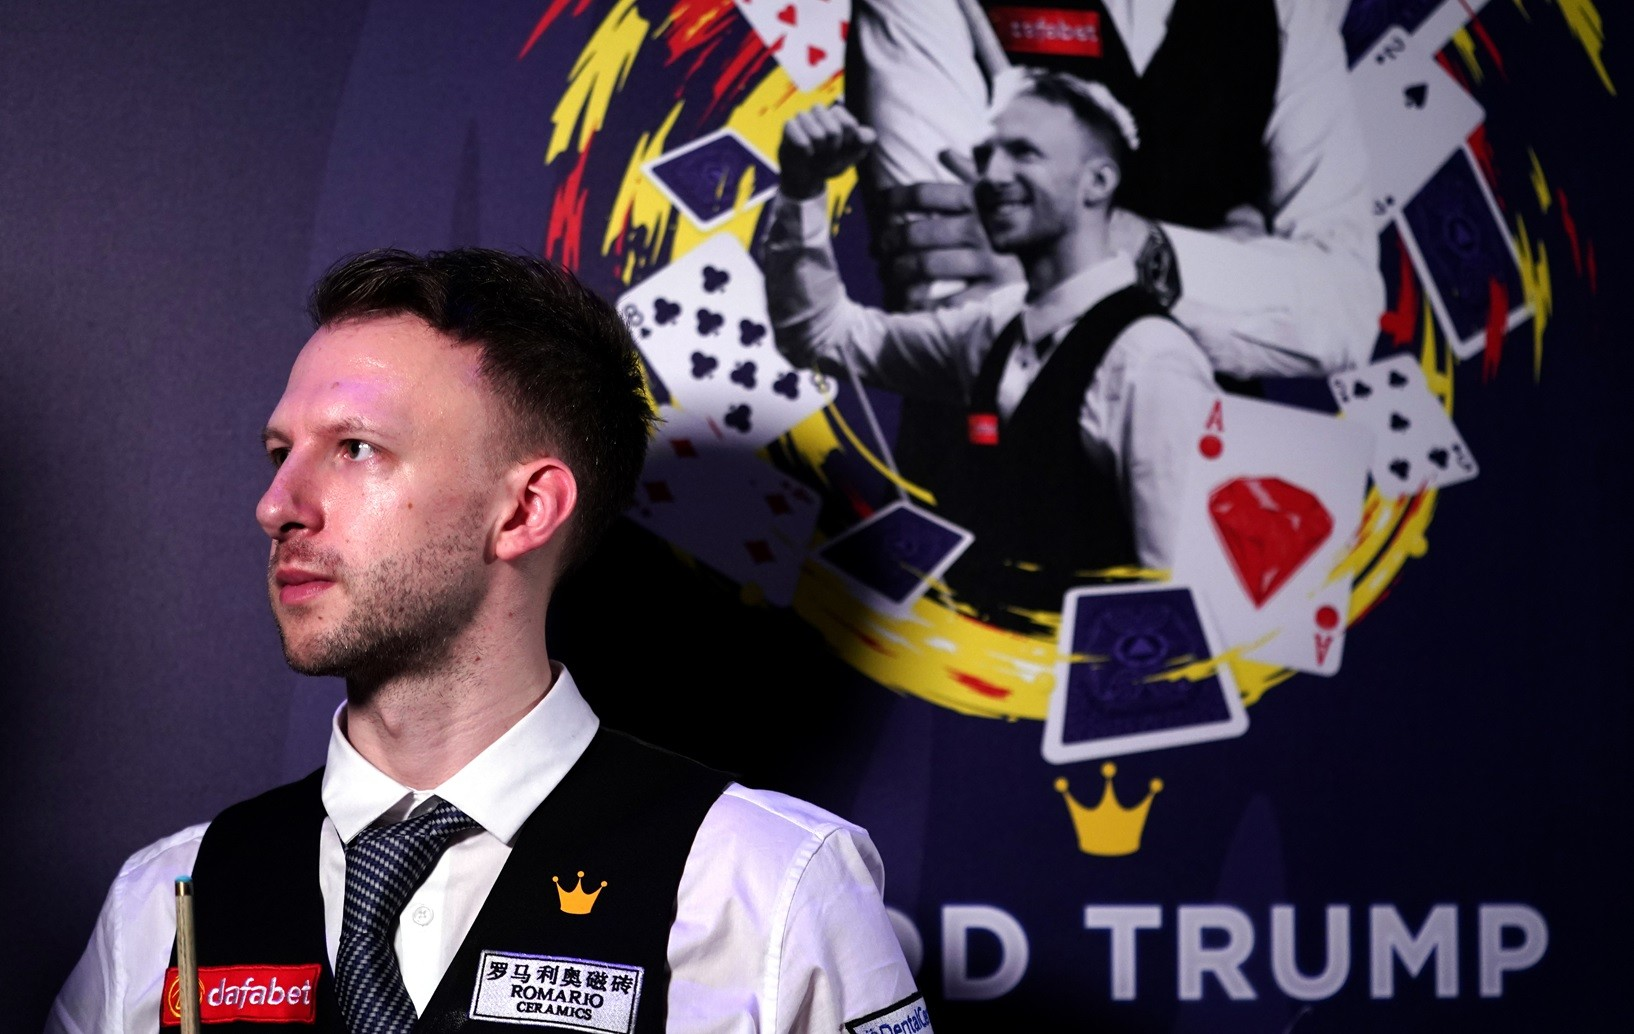 Gibraltar Open Snooker 2020 Draw, Live Scores and Tournament Schedule